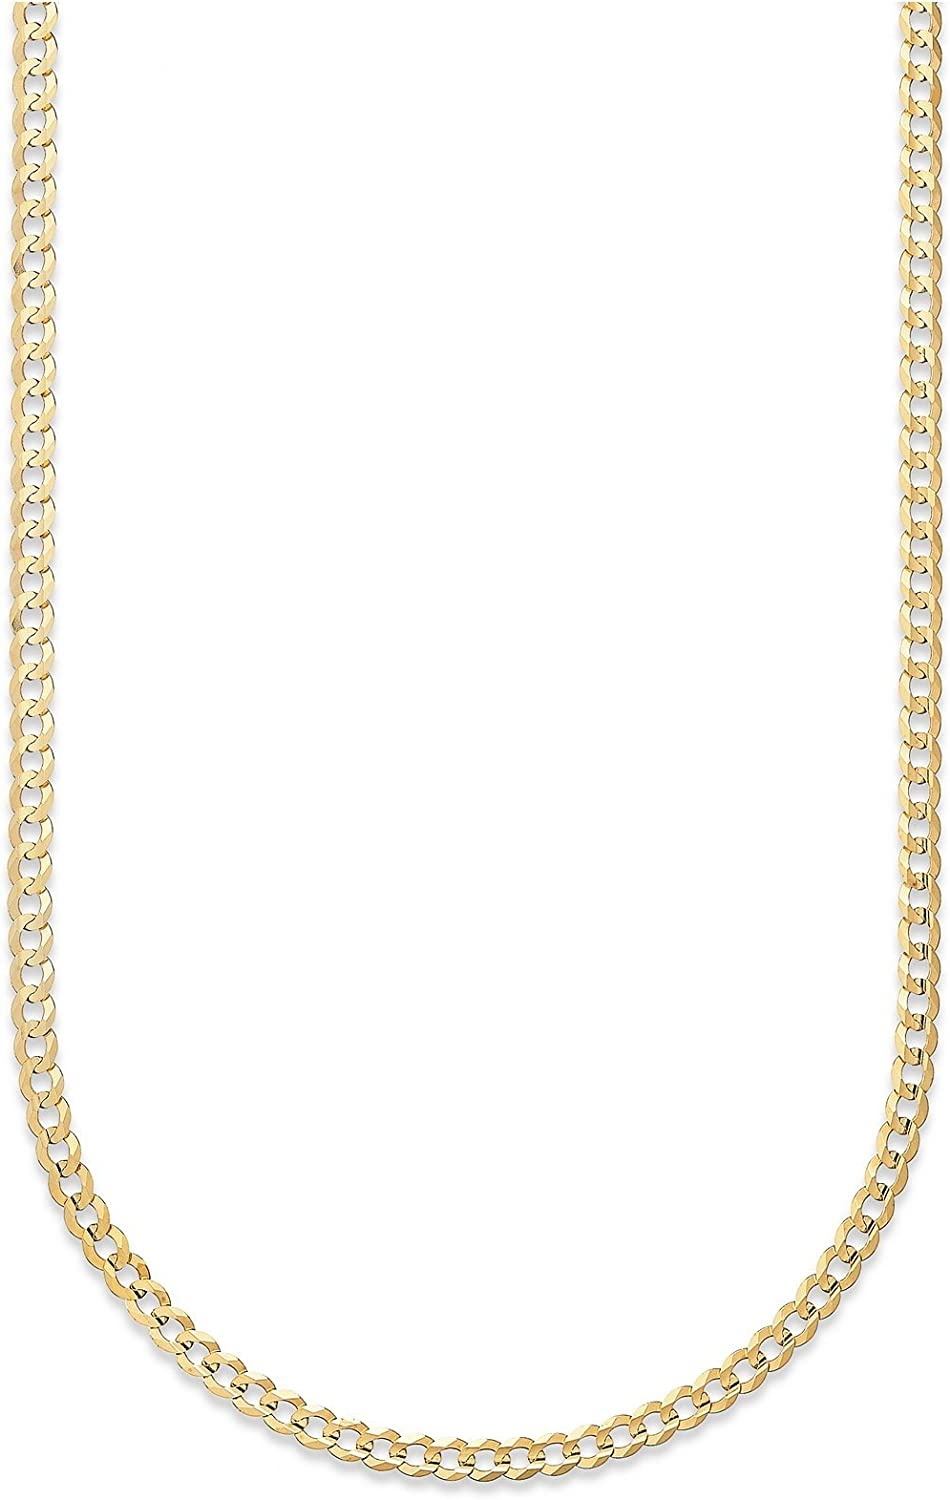 14K Solid Yellow Gold 2.65mm Cuban Curb Link Chain Necklace- Made in Italy 61pXtWZQF9L